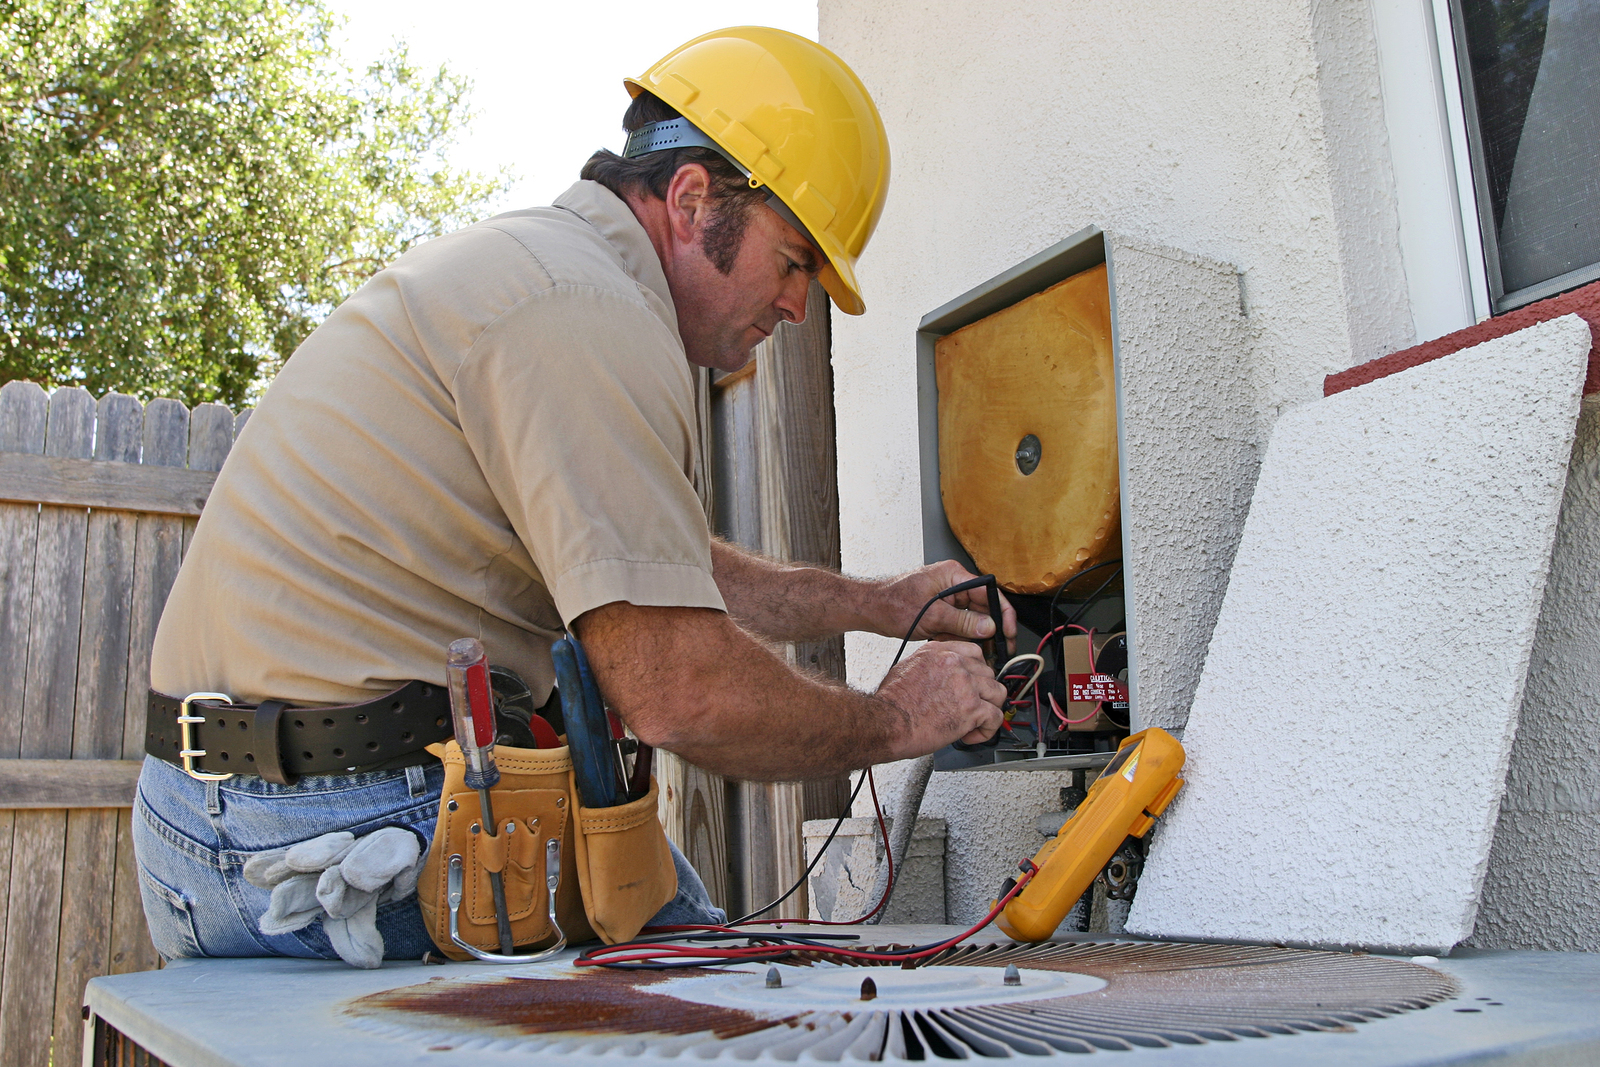 an air conditioning repairman working on a heat recovery unit.